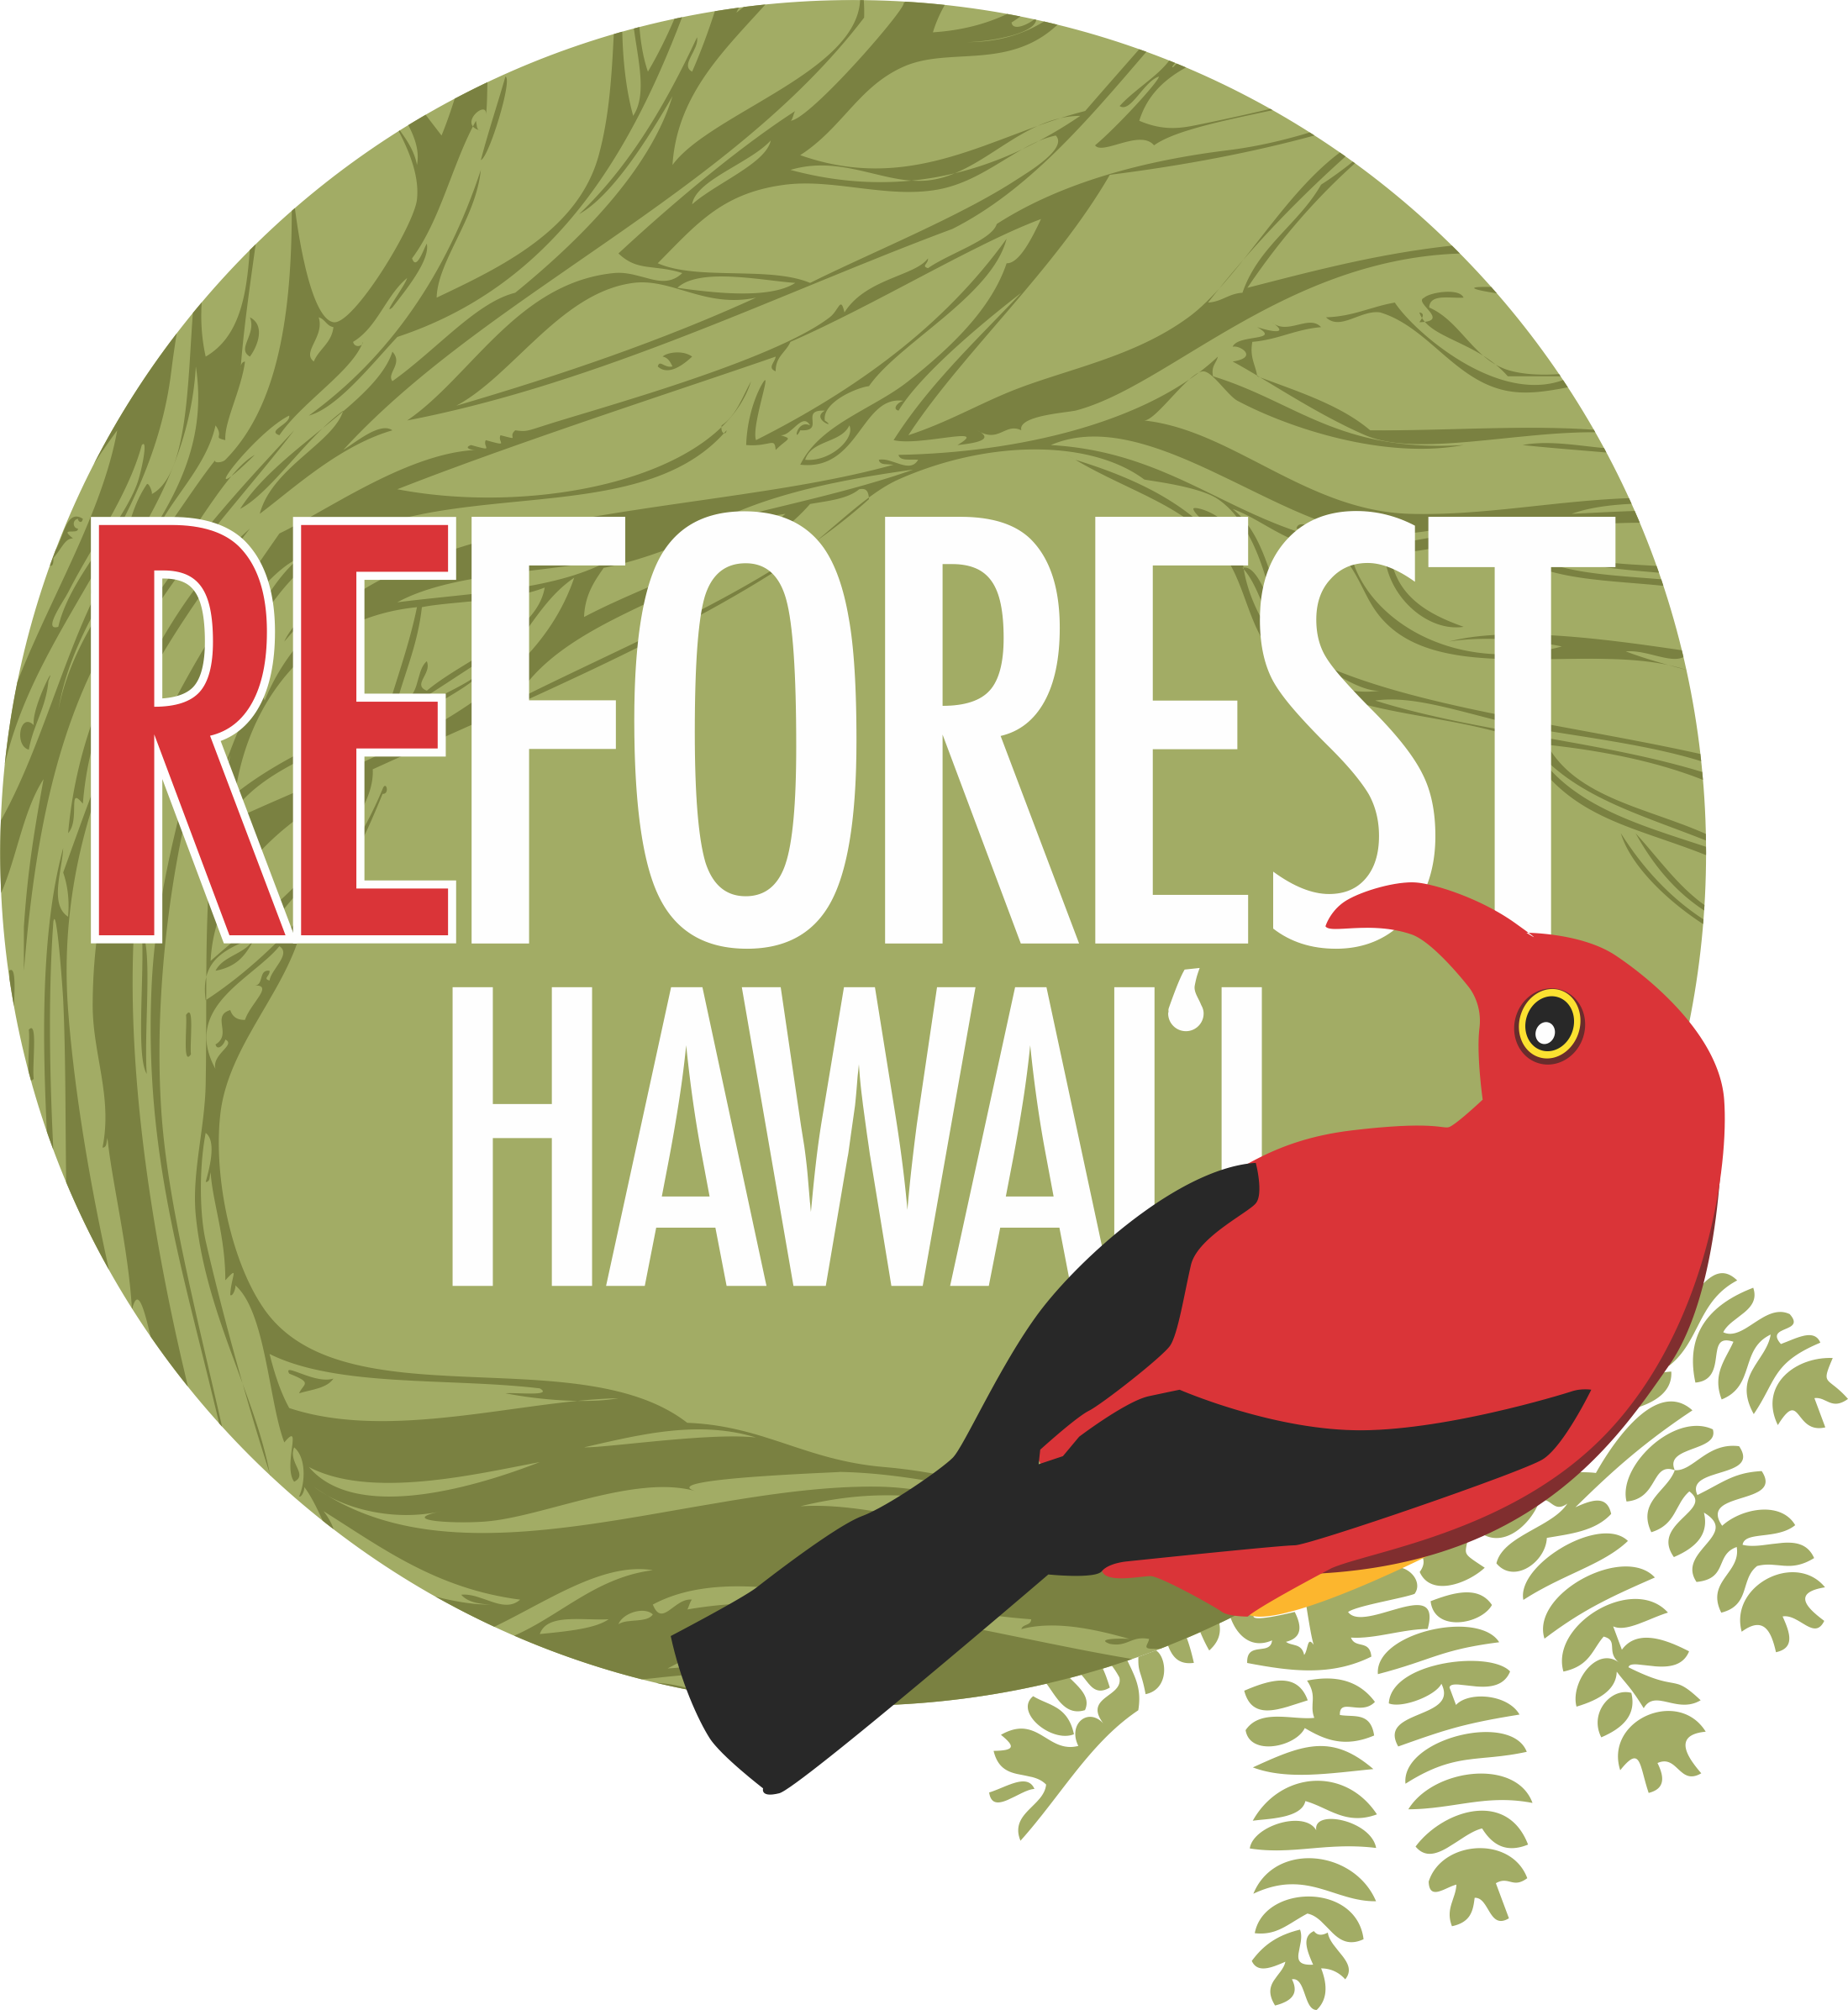 reforest hawaii.png